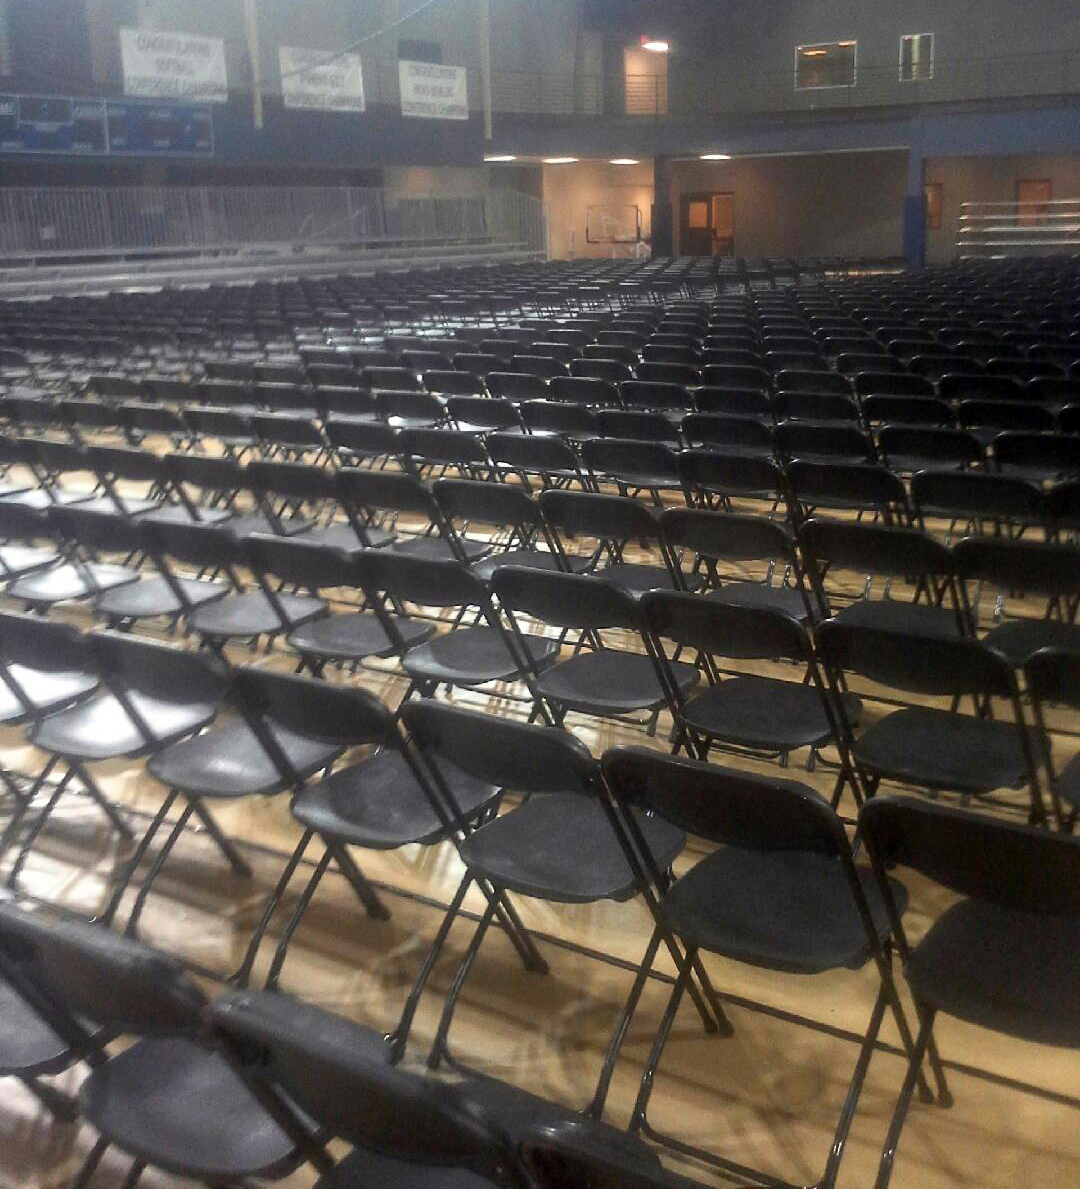 1,650 Standard Black Plastic Folding Chair Setup For The William Penn  University 2014 Graduation.